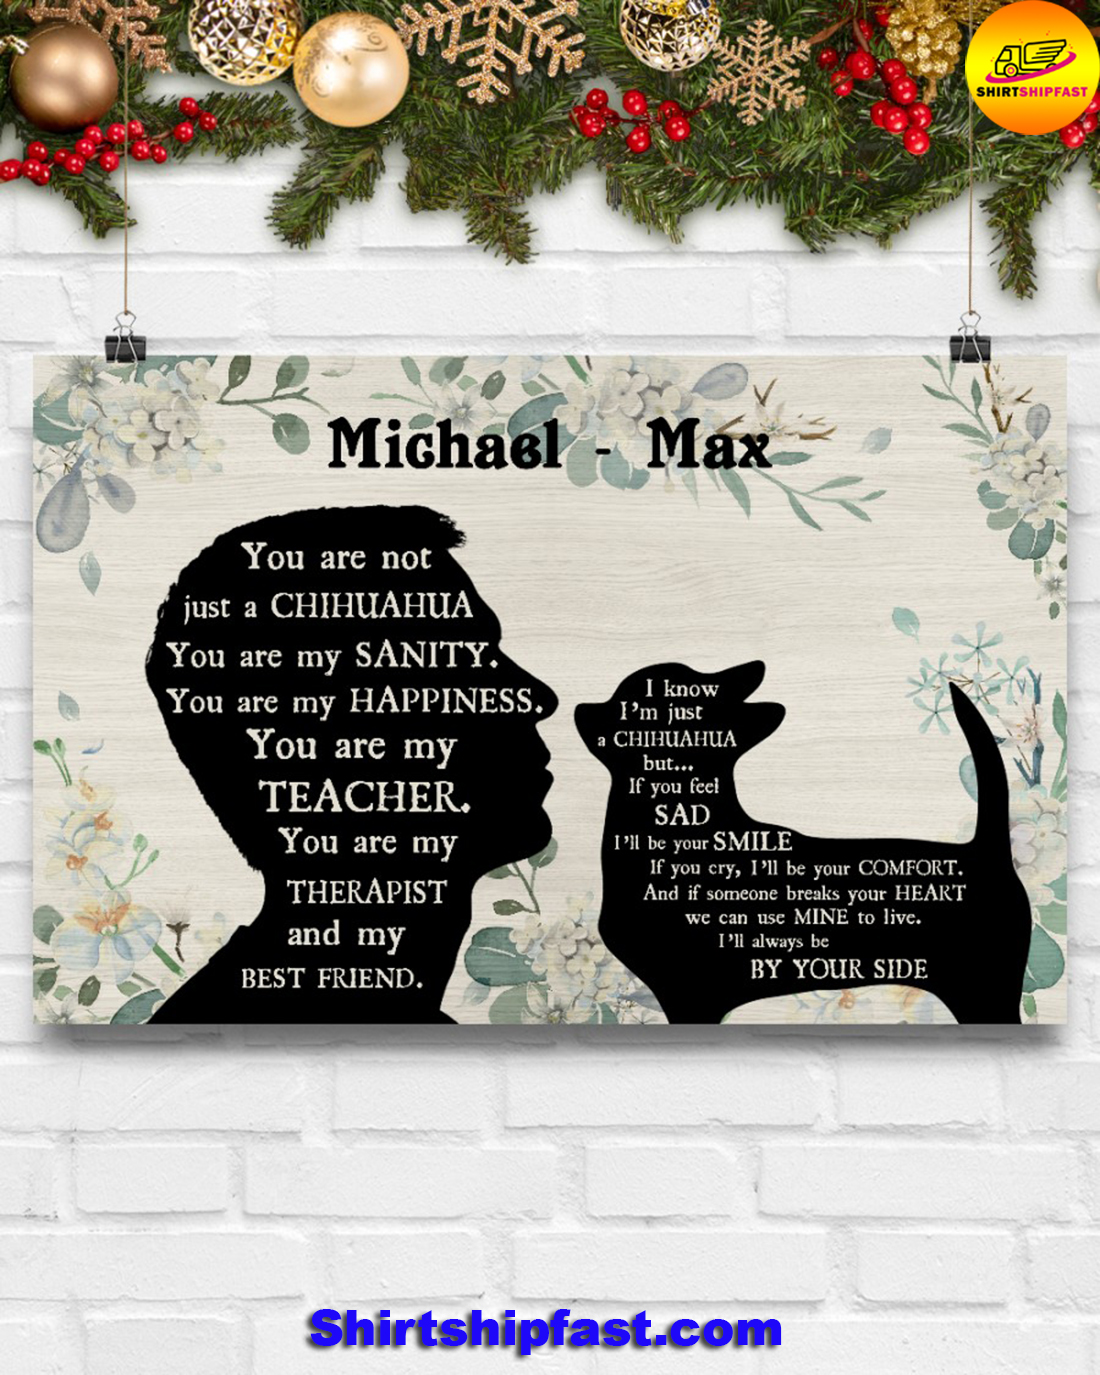 Male You are not just a chihuahua personalized poster - Picture 2